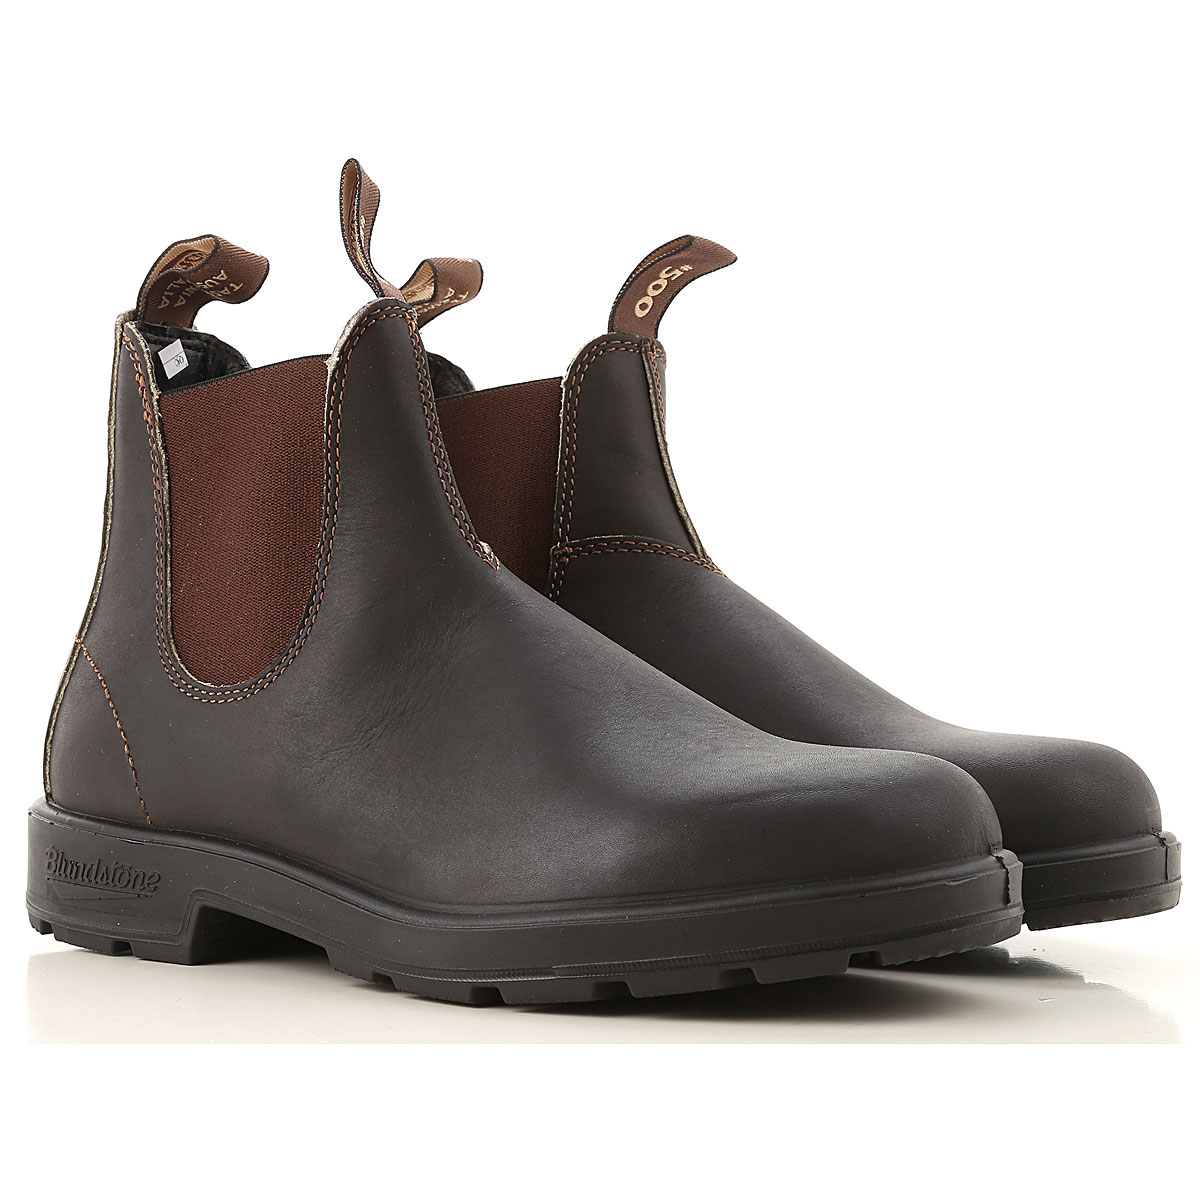 Blundstone Boots for Men, Booties, Dark Brown, Leather, 2019, AU/UK 7 - US 8 AU/UK 8 - US 9 AU/UK 11 - US 12 AU/UK 12 - US 13 AU/UK 6.5 - US 7.5